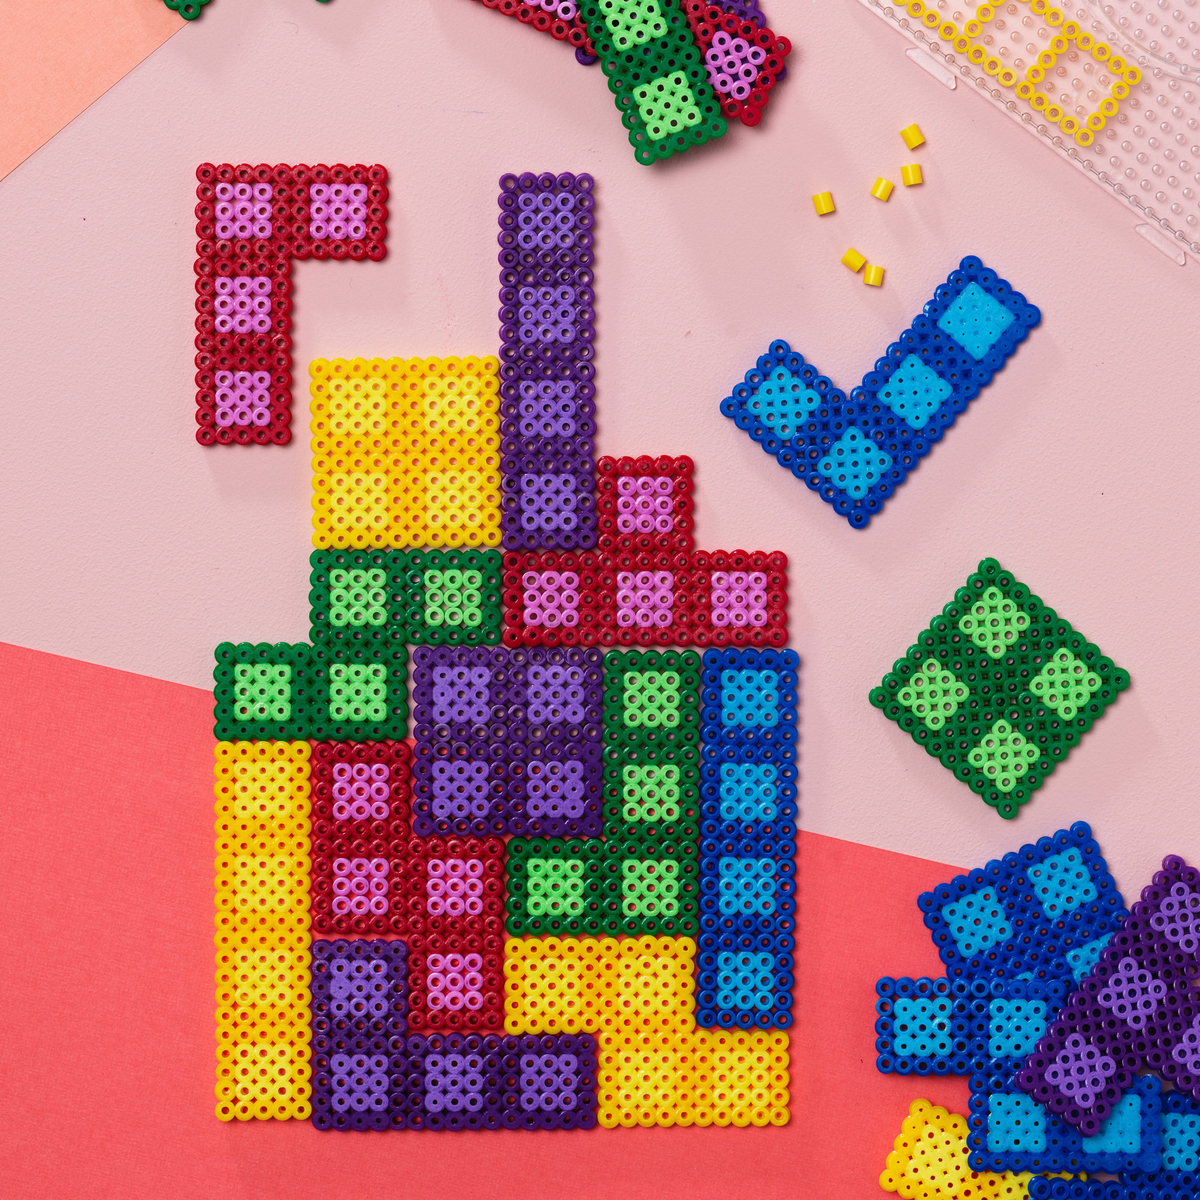 Make a beaded tile game